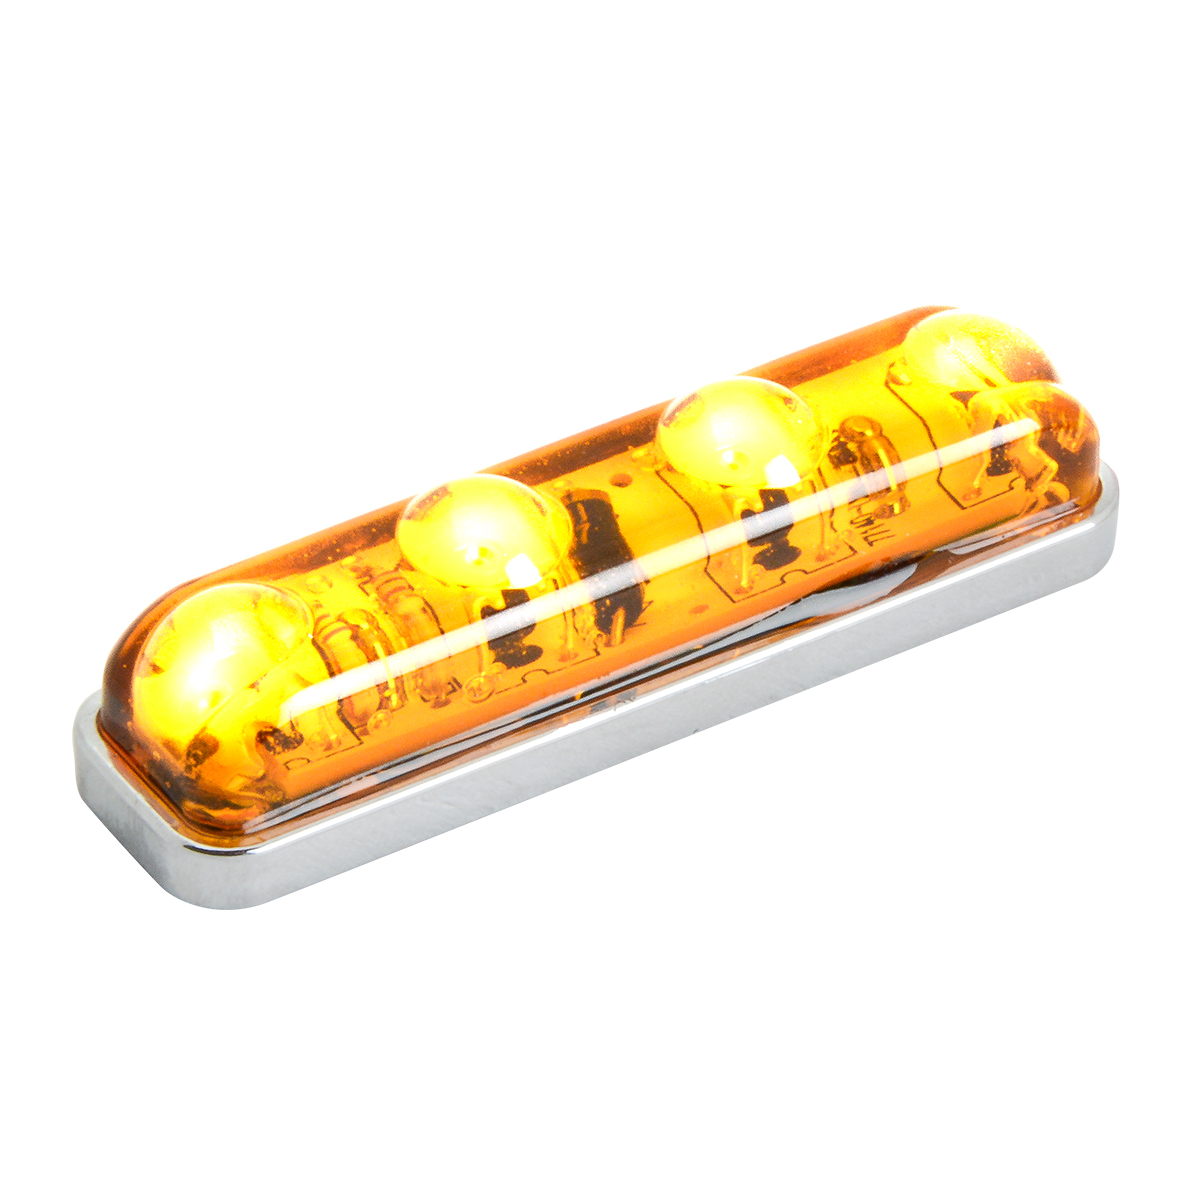 77140 Small Thin Lin Surface Mount LED Light in Amber/Amber